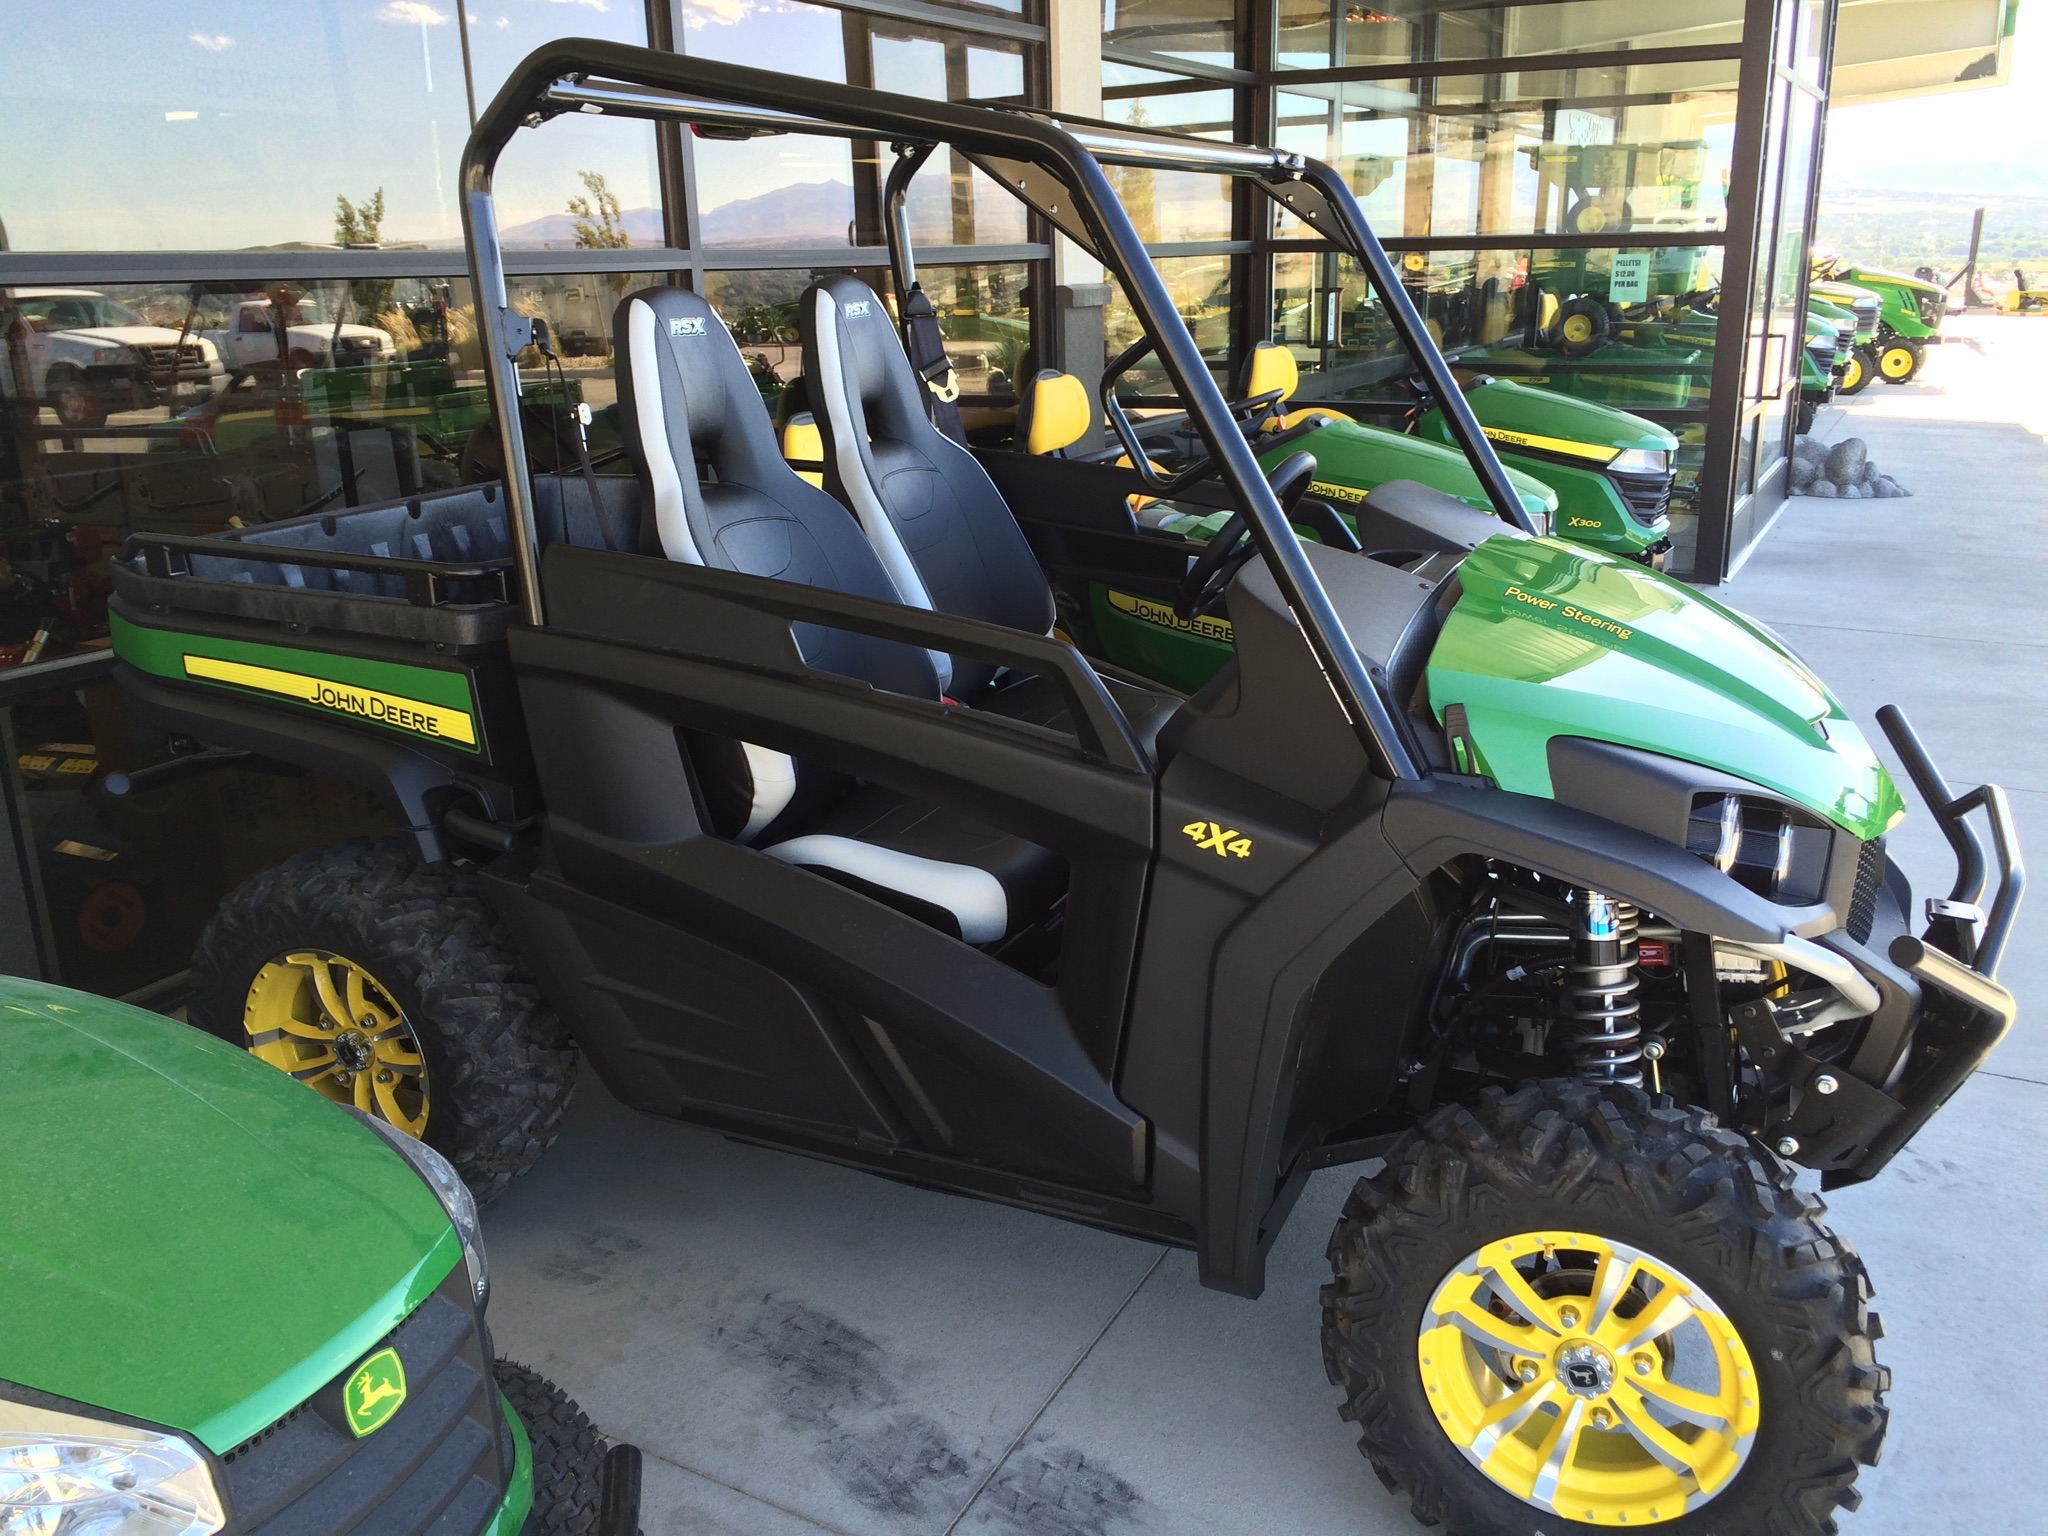 john deere gator rsx850i car interior design. Black Bedroom Furniture Sets. Home Design Ideas